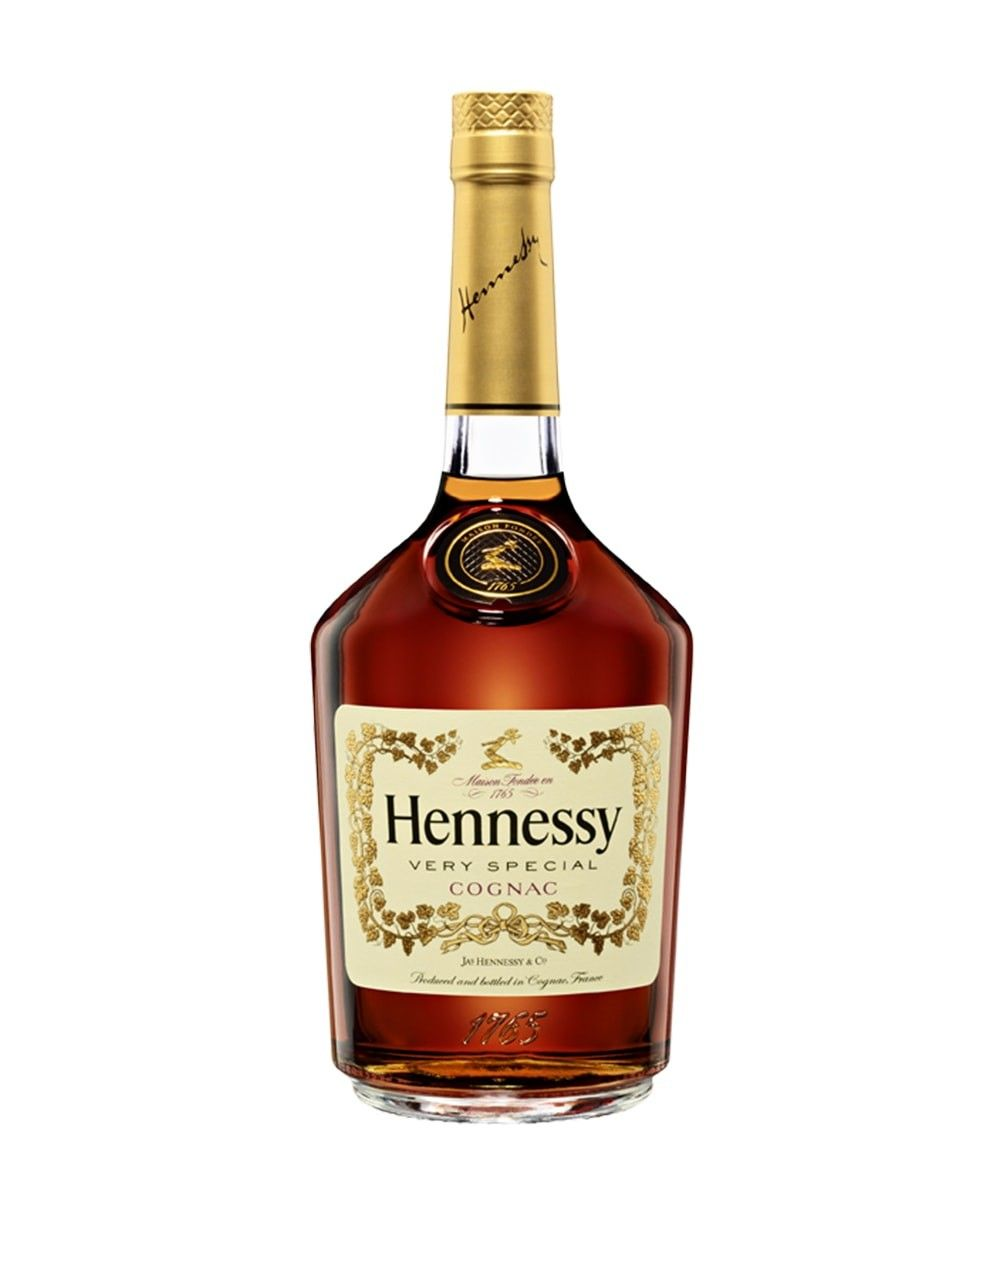 hennessy label template vector pictures to pin on pinterest pinsdaddy. Black Bedroom Furniture Sets. Home Design Ideas